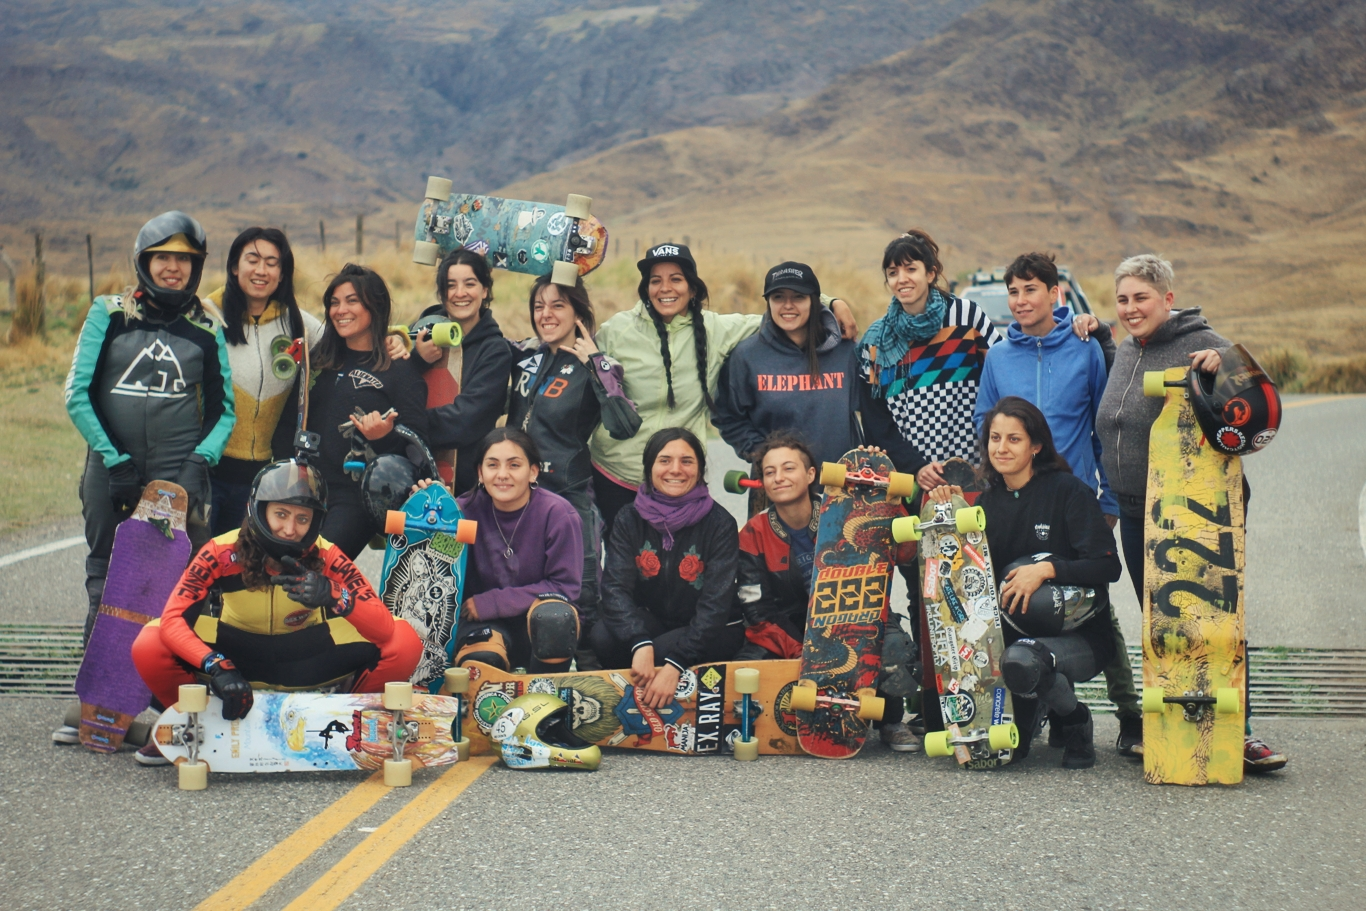 longboard girls crew, longboard, longboarding, skate, skateboarding, cool, rad, strong, awesome, photo, girl, power, sea, summer, amazing photo, nose manual, girls who shred, girls who skate, lgc, friends, fun, skate like a girl, women supporting women, goals, beautiful, action, action sports, sport, women in sport, game changers, ride, female rider, athlete, girlboss, lean in, women unite, equality, balance, gender, gender equality, board, boards, sun, longboard girl, longboard girls, boards, skater girl, skater girls, fashion, love, freeride, downhill, dancing, friendship, friends, be the change, work for change, downhill skateboarding, longboardgirls, longboardgirl, longboardgirlscrew, skatergirl, empowering women, female empowerment, women empowerment, longboarddancing, downhillskateboarding, LGBT, California, mujeres longboarders, mujeres, empoderamiento femenino, chicas longboarders, amigas, deportes extremos, igualdad, género, deporte, tablas, mujeres y tablas, chicas y tablas, atletas, Verano, argentina, Lgc argentina, SHE RIDE, copina, Cordoba